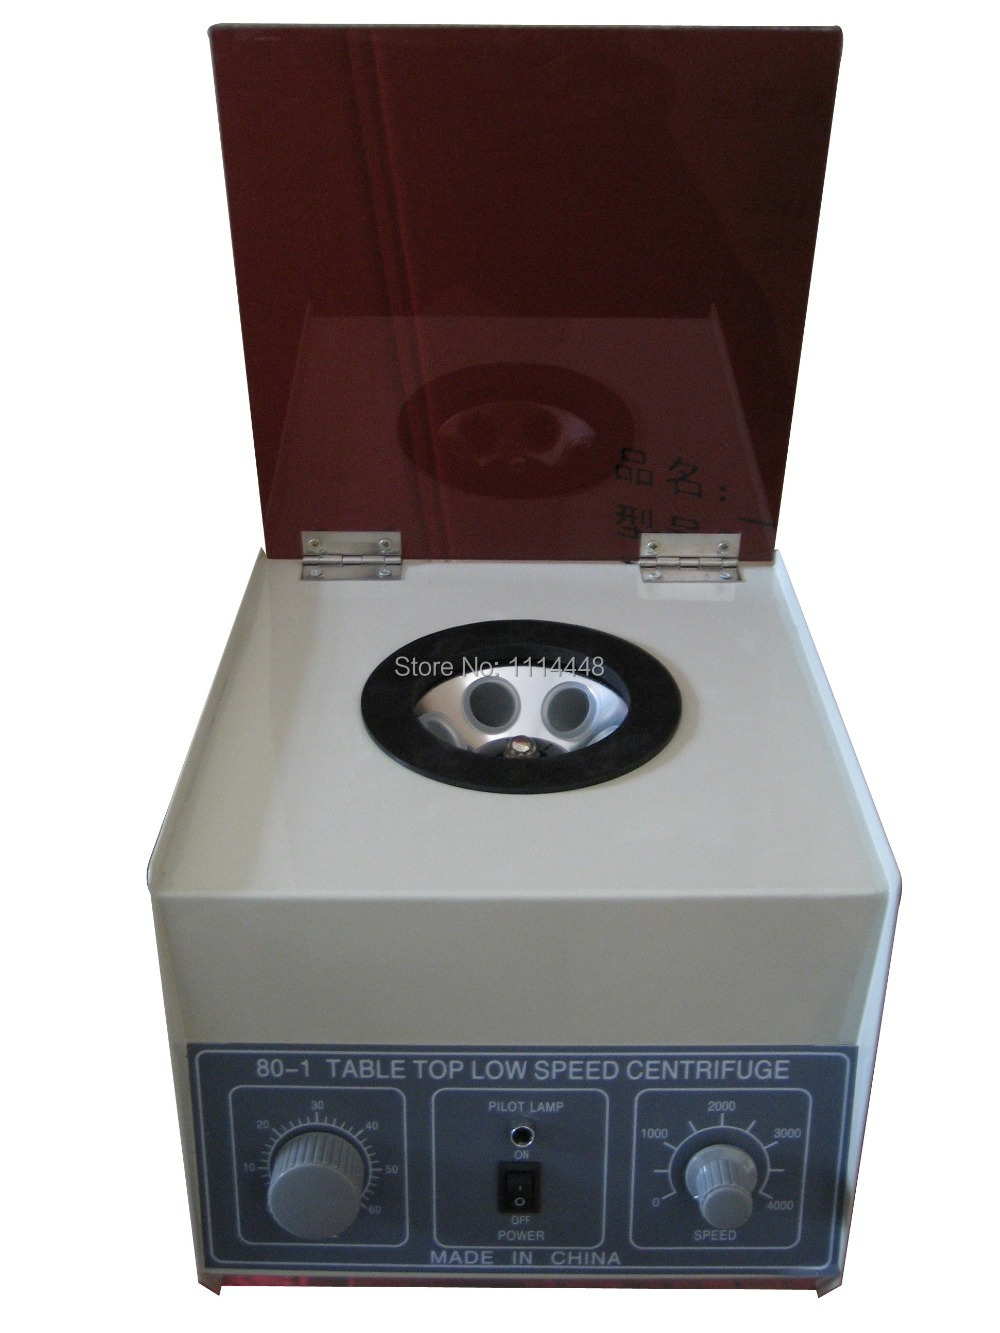 80-1 Desktop Electric Medical Lab Centrifuge Laboratory Centrifuge 4000rpm CE 6 x 20ml w/timer 0-60min electric lab centrifuge laboratory medical practice supplies 4000 rpm 20 ml x 6 1790 g